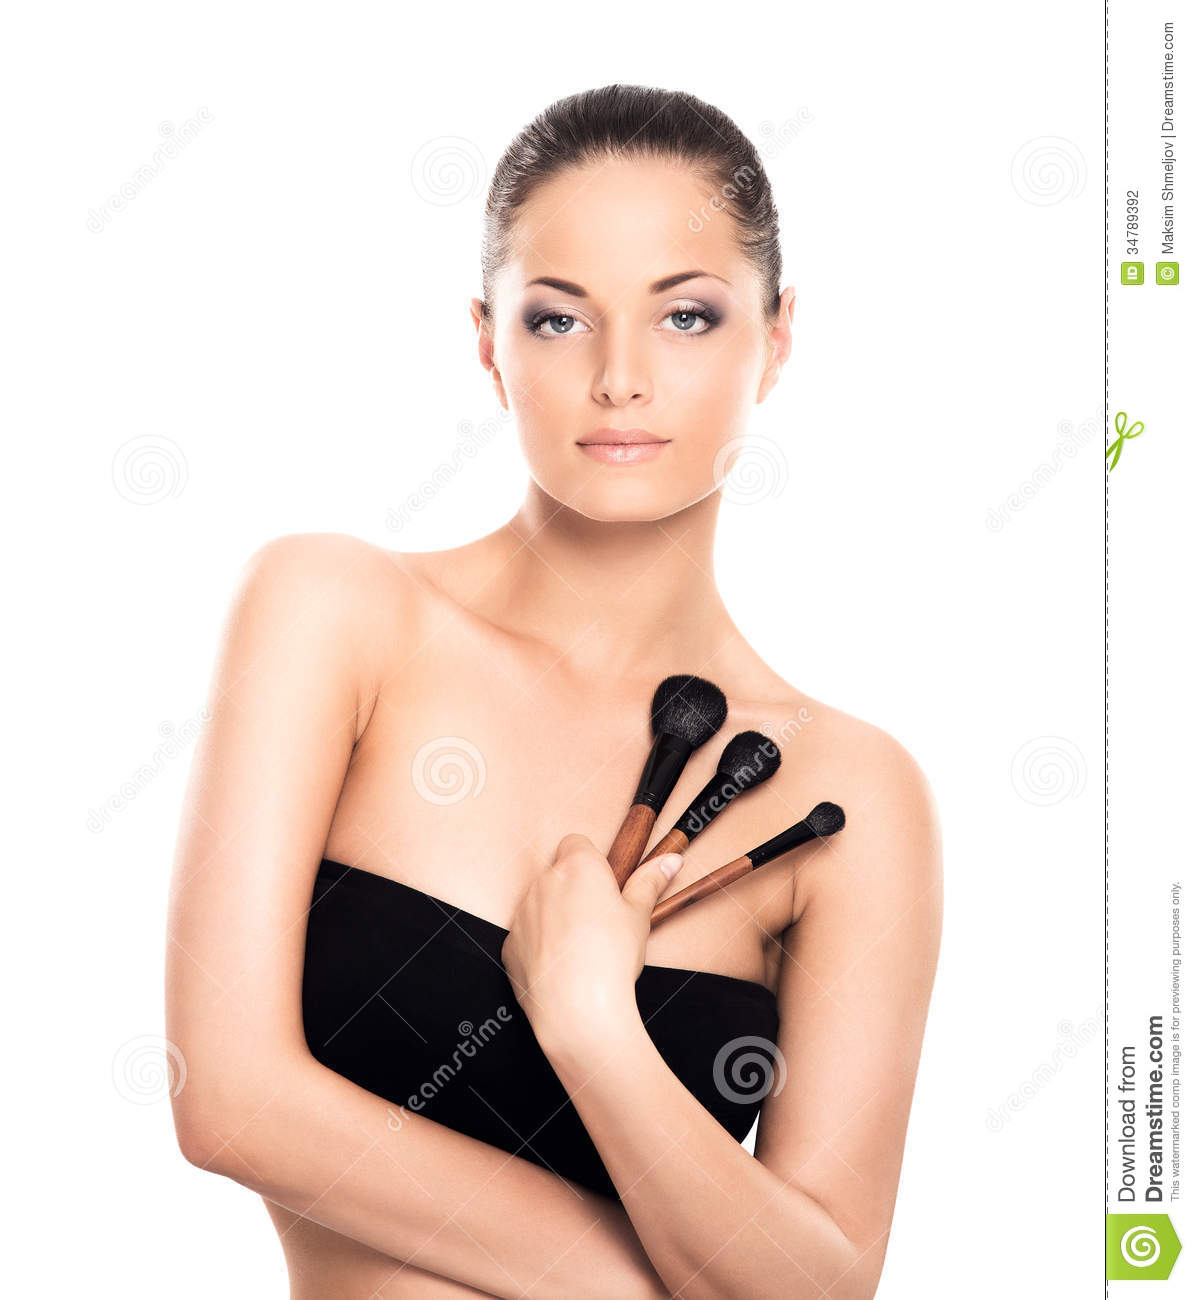 Beauty Holding It: Portrait Of A Happy Woman Holding Makeup Brushes Stock